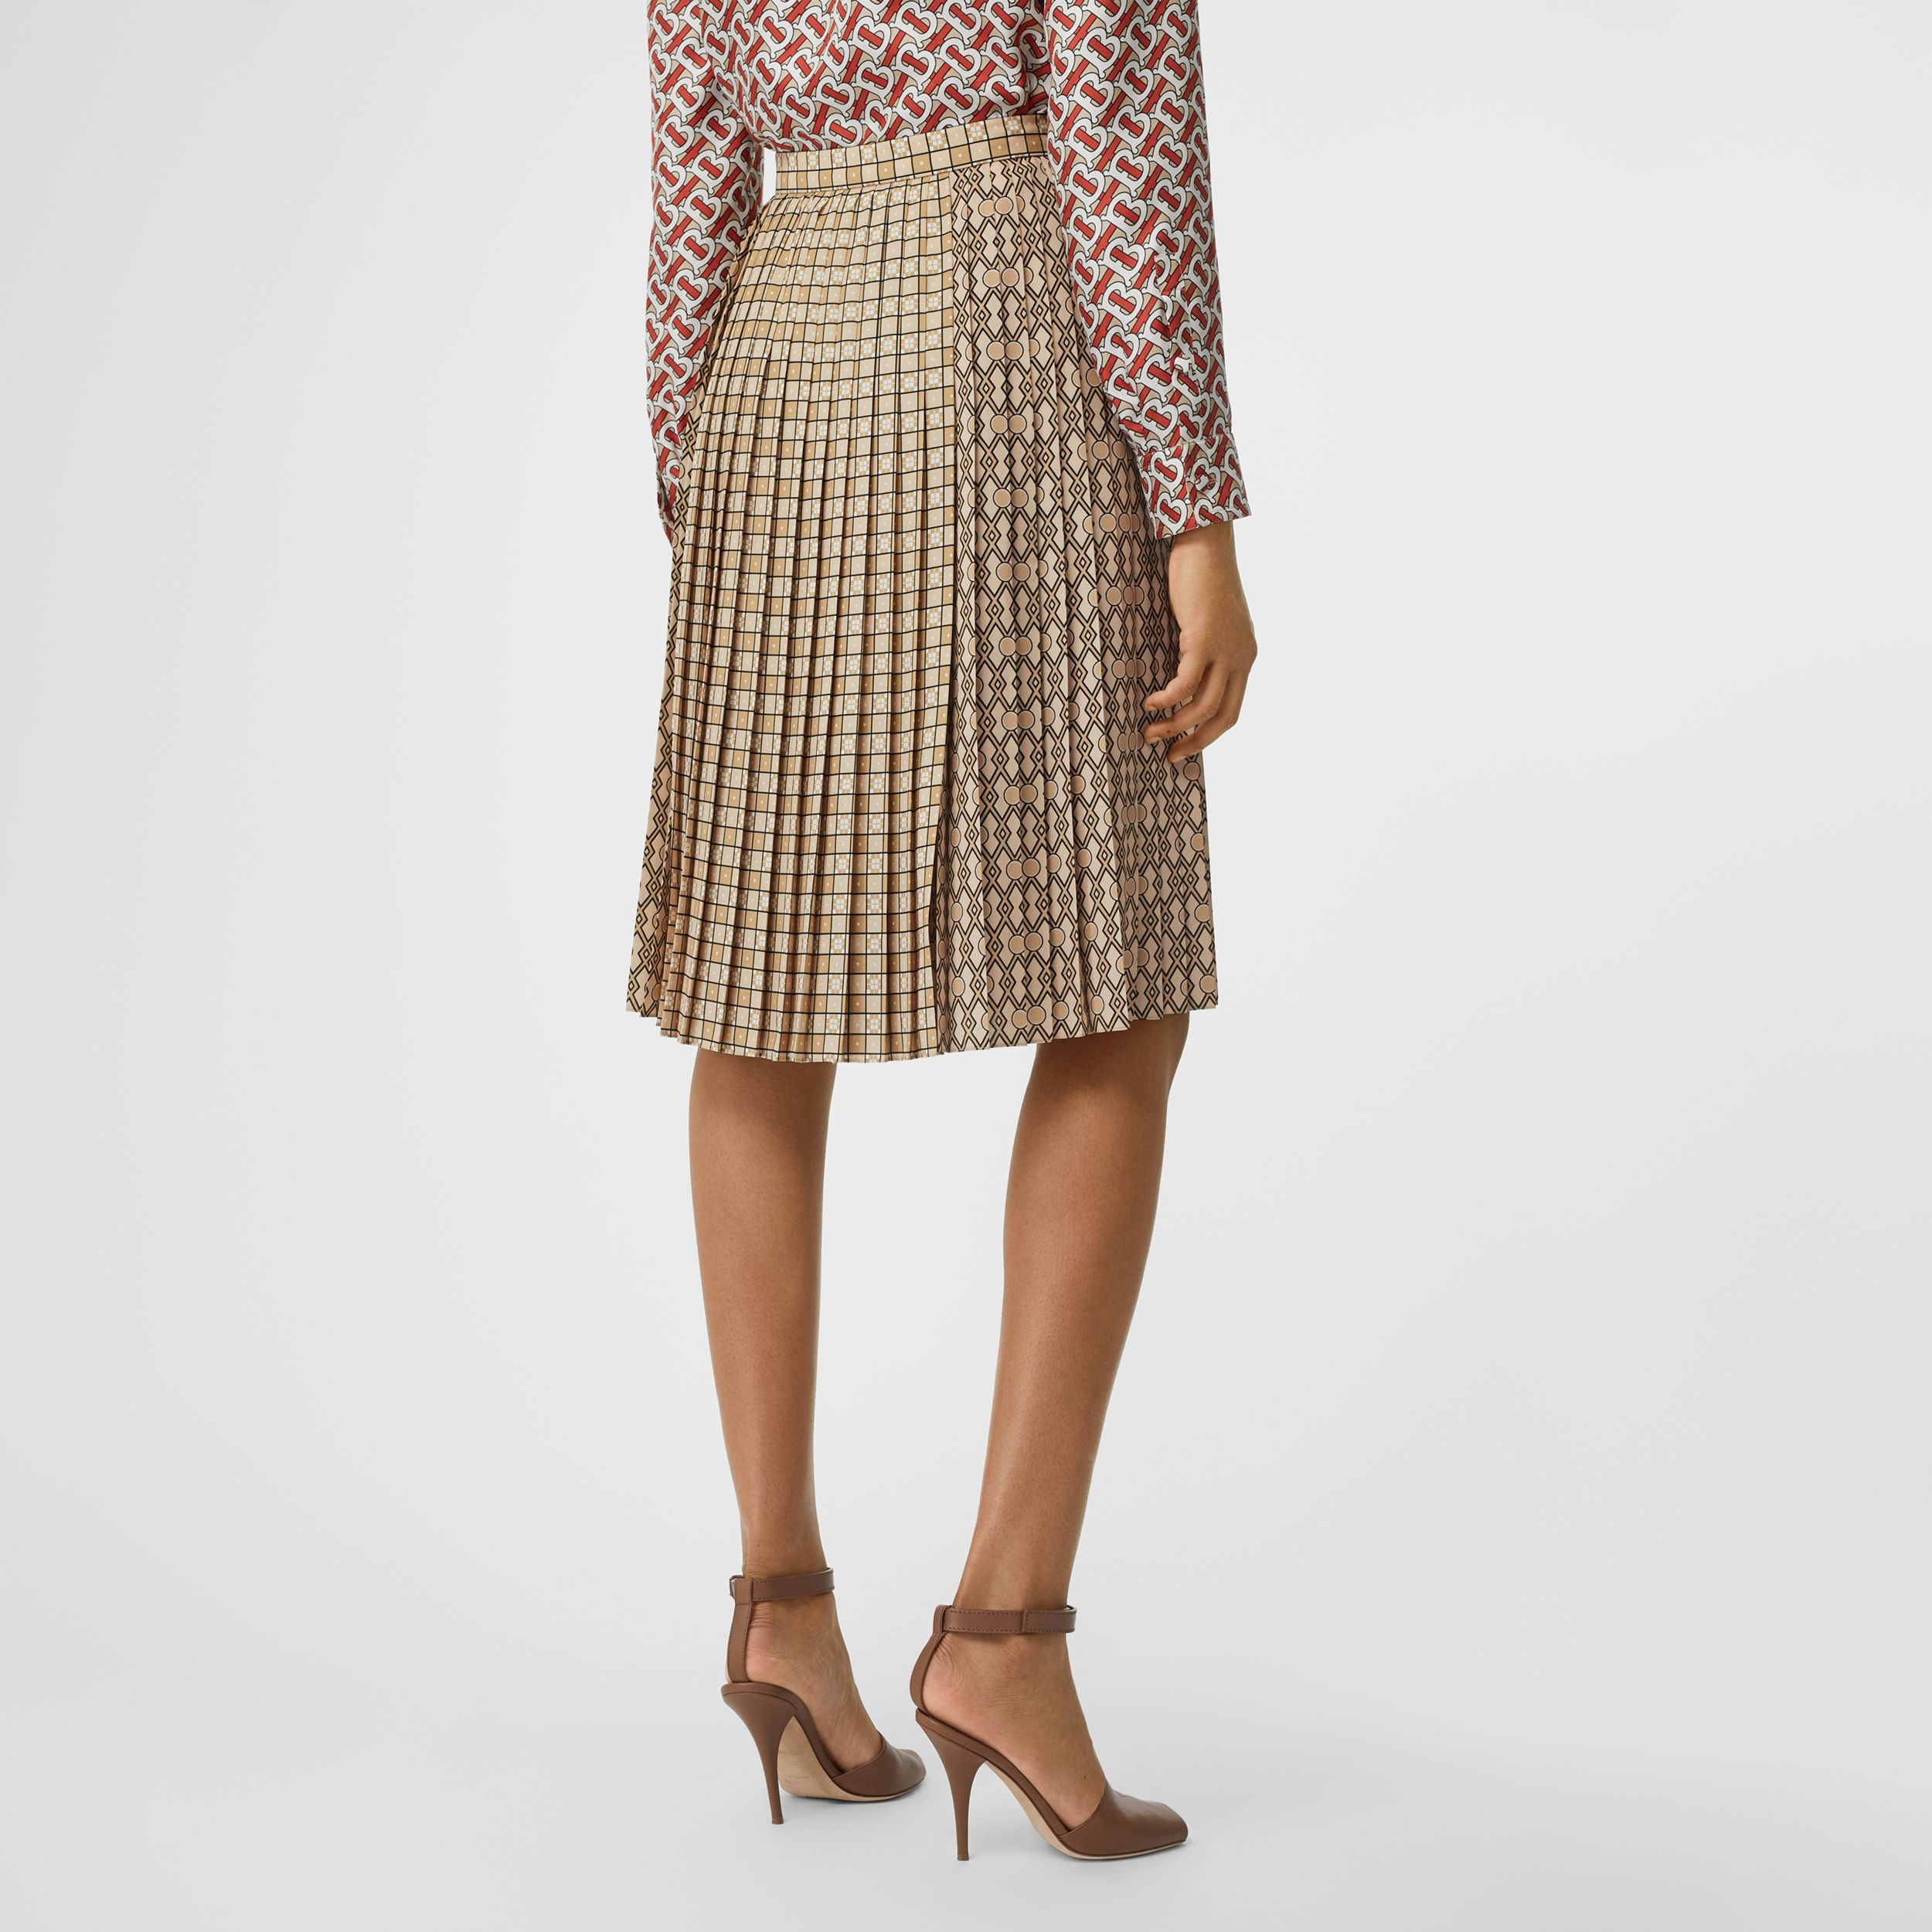 Contrast Graphic Print Pleated Skirt in Latte | Burberry Singapore - 3